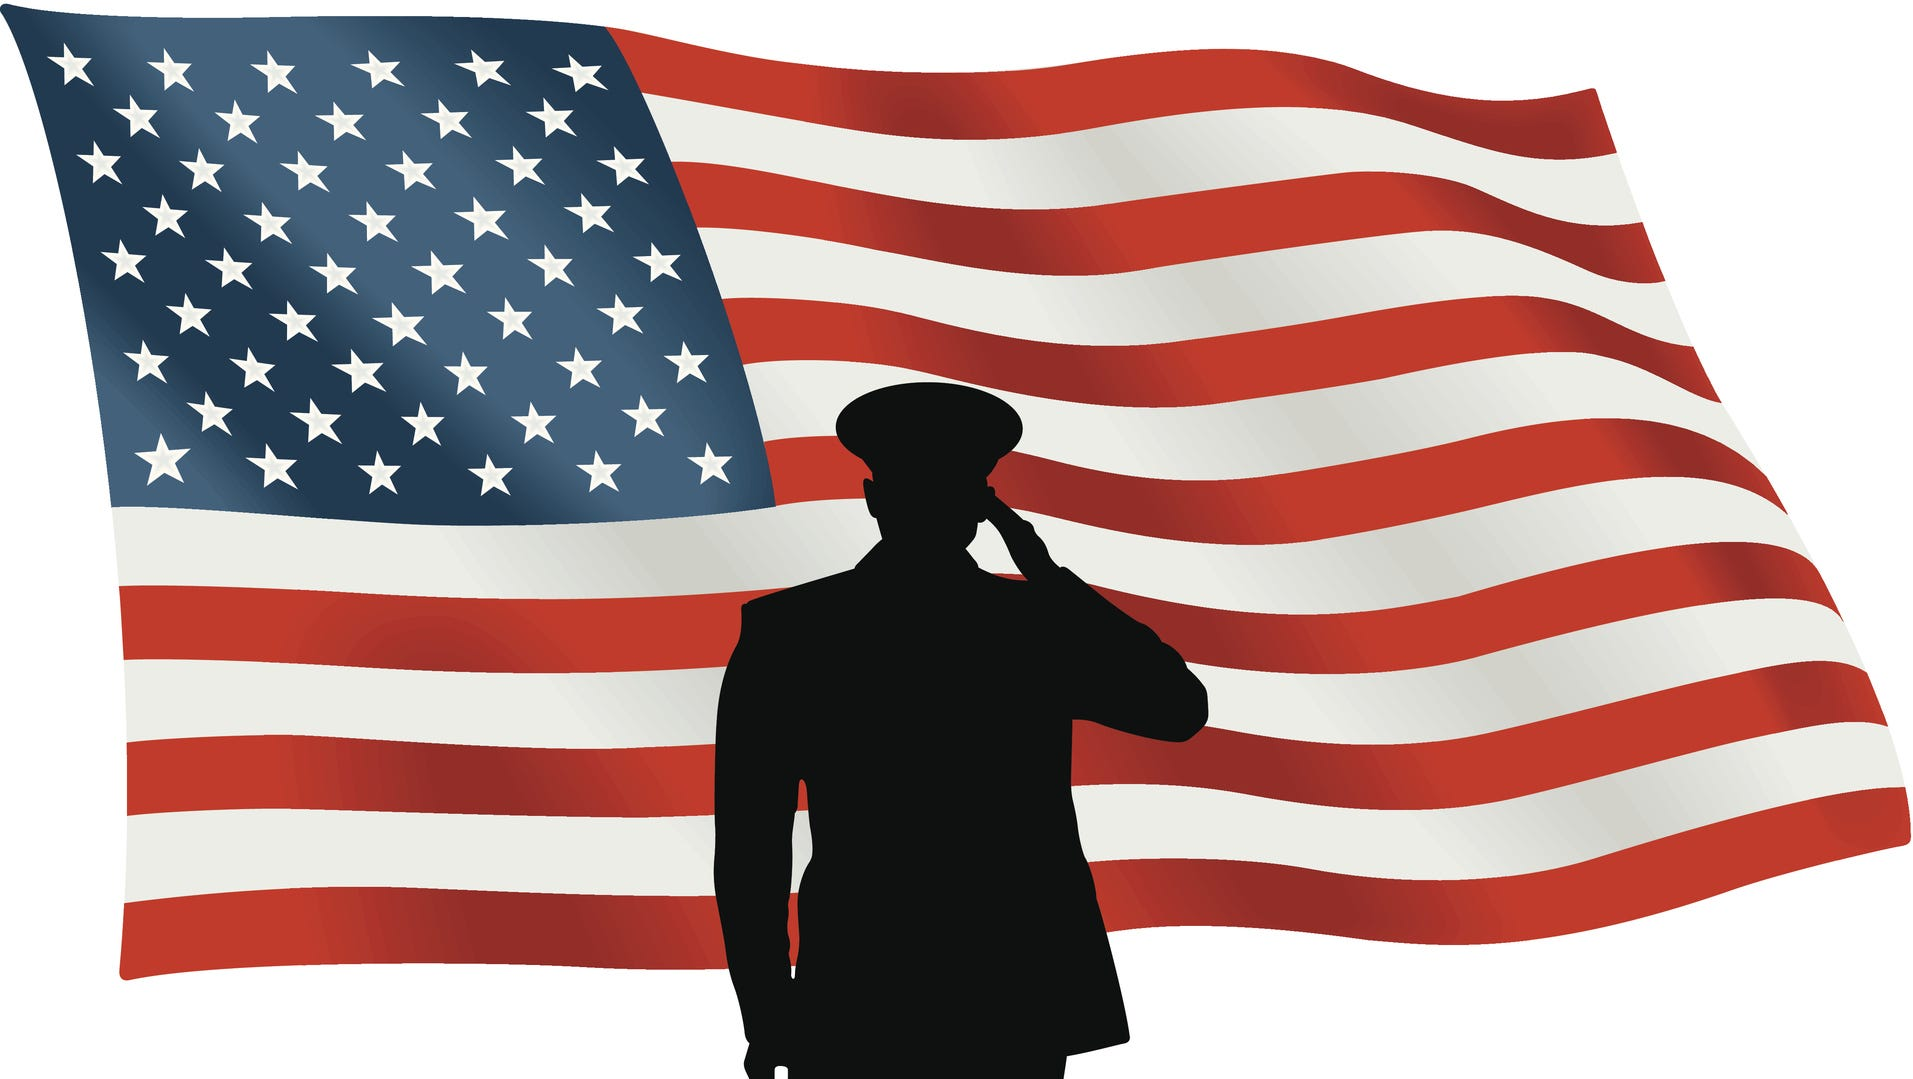 The City of Vineland Patriot Day Ceremony will be held at 6 p.m. Sept. 11 at the Vineland Fire Headquarters at 110 N. Fourth St., VIneland.